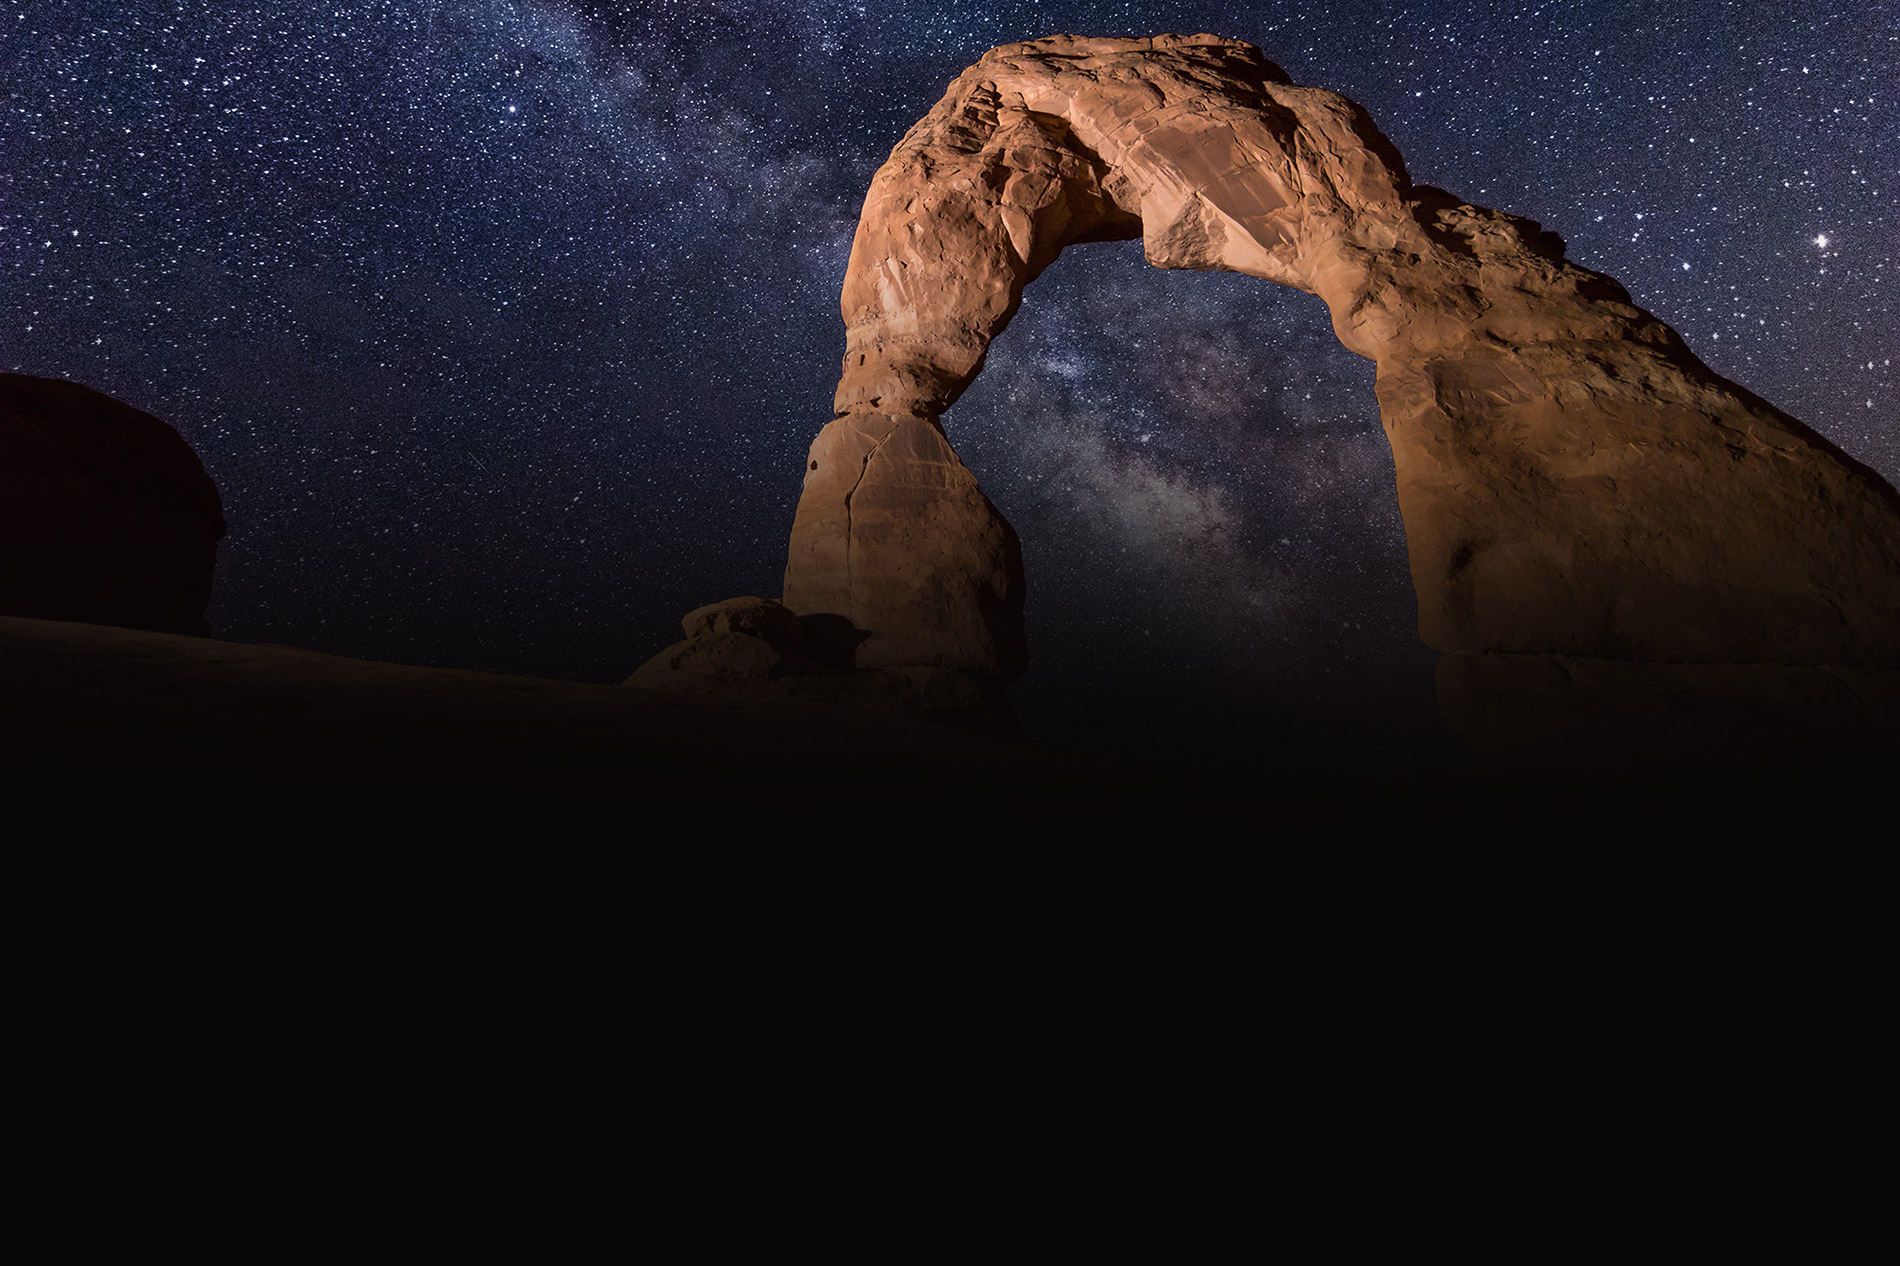 Orion rising over Delicate Arch image